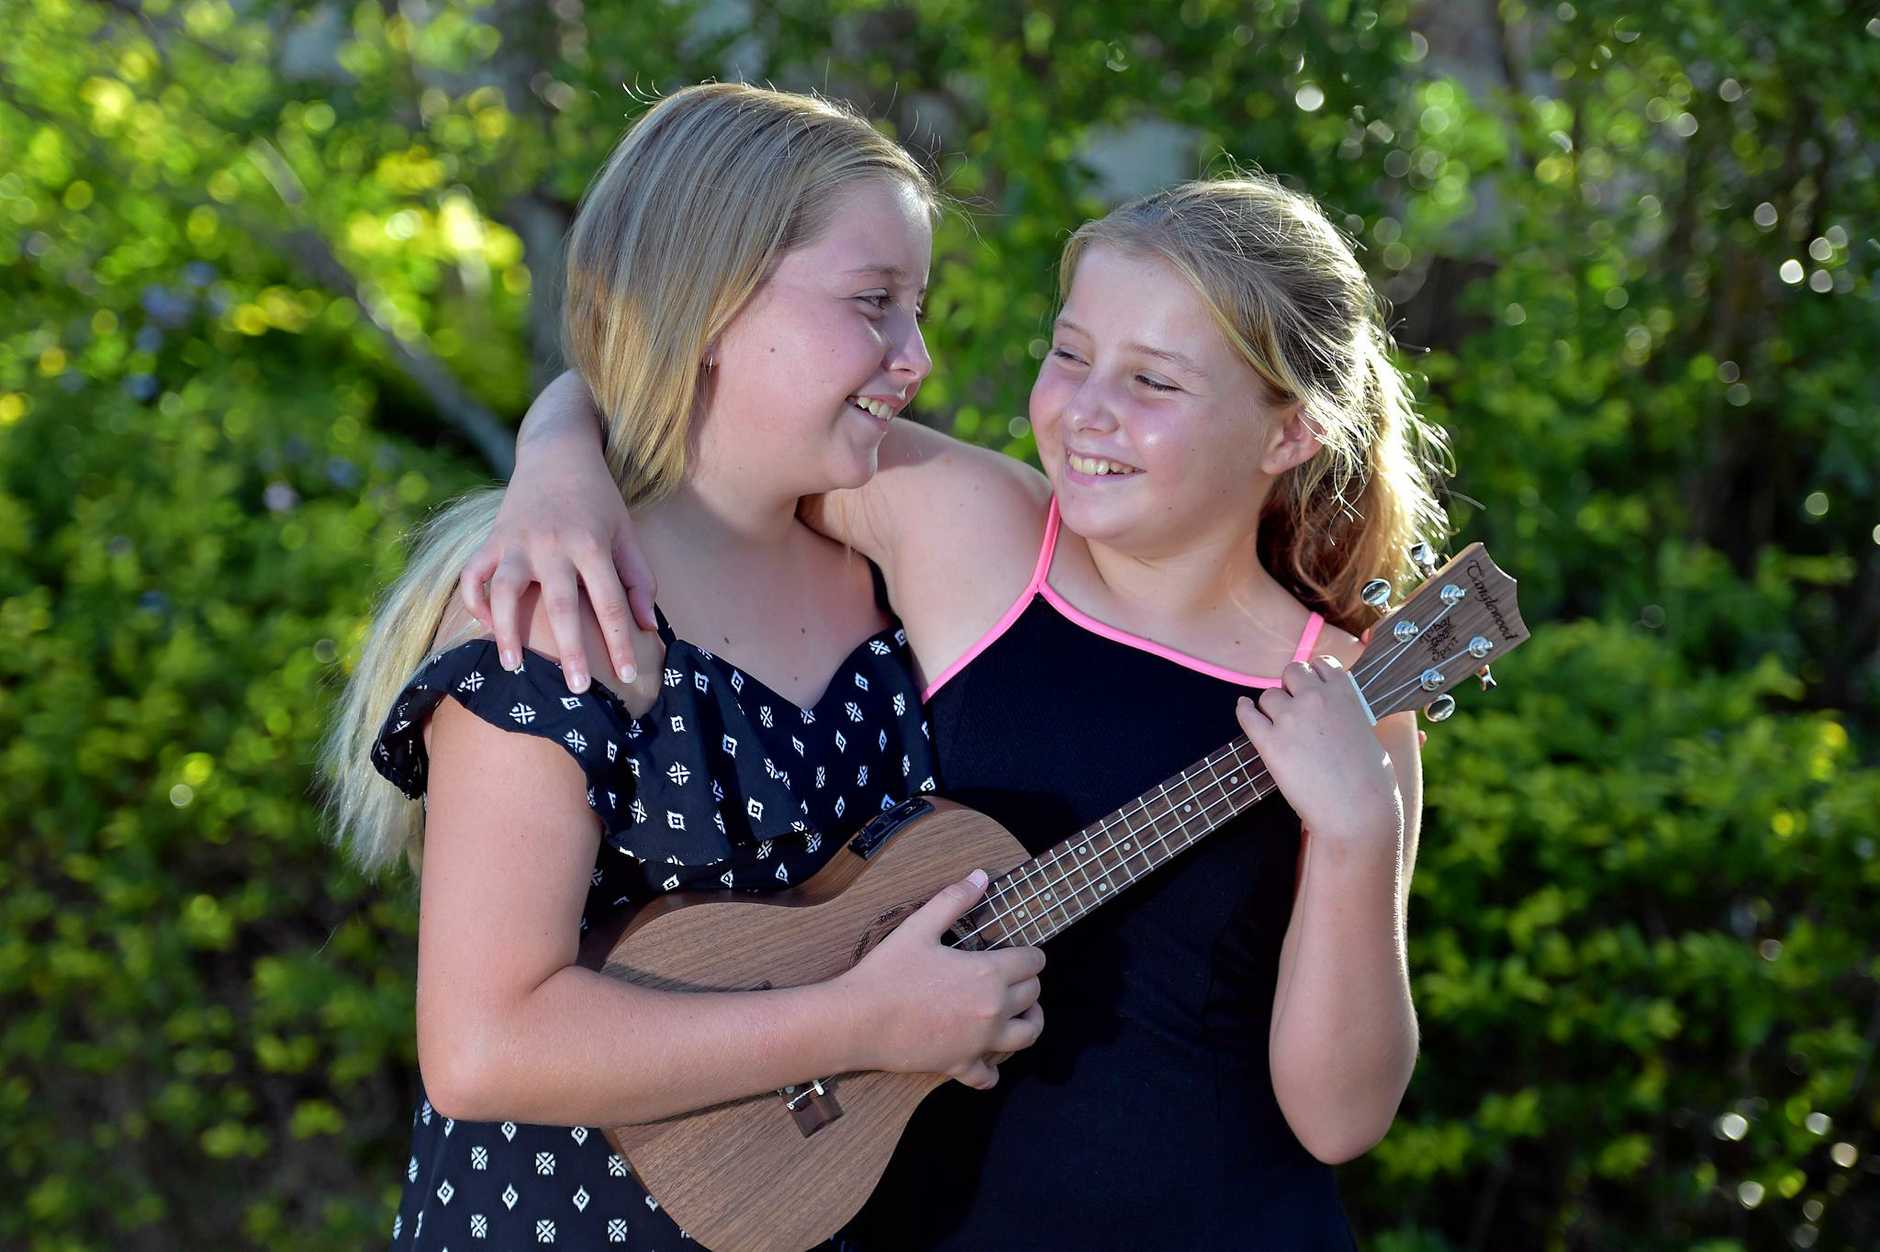 Trini Blackmore,12, has discovered she loves to sing and play the ukulele.Twin sister Madi (right) joins in the fun.